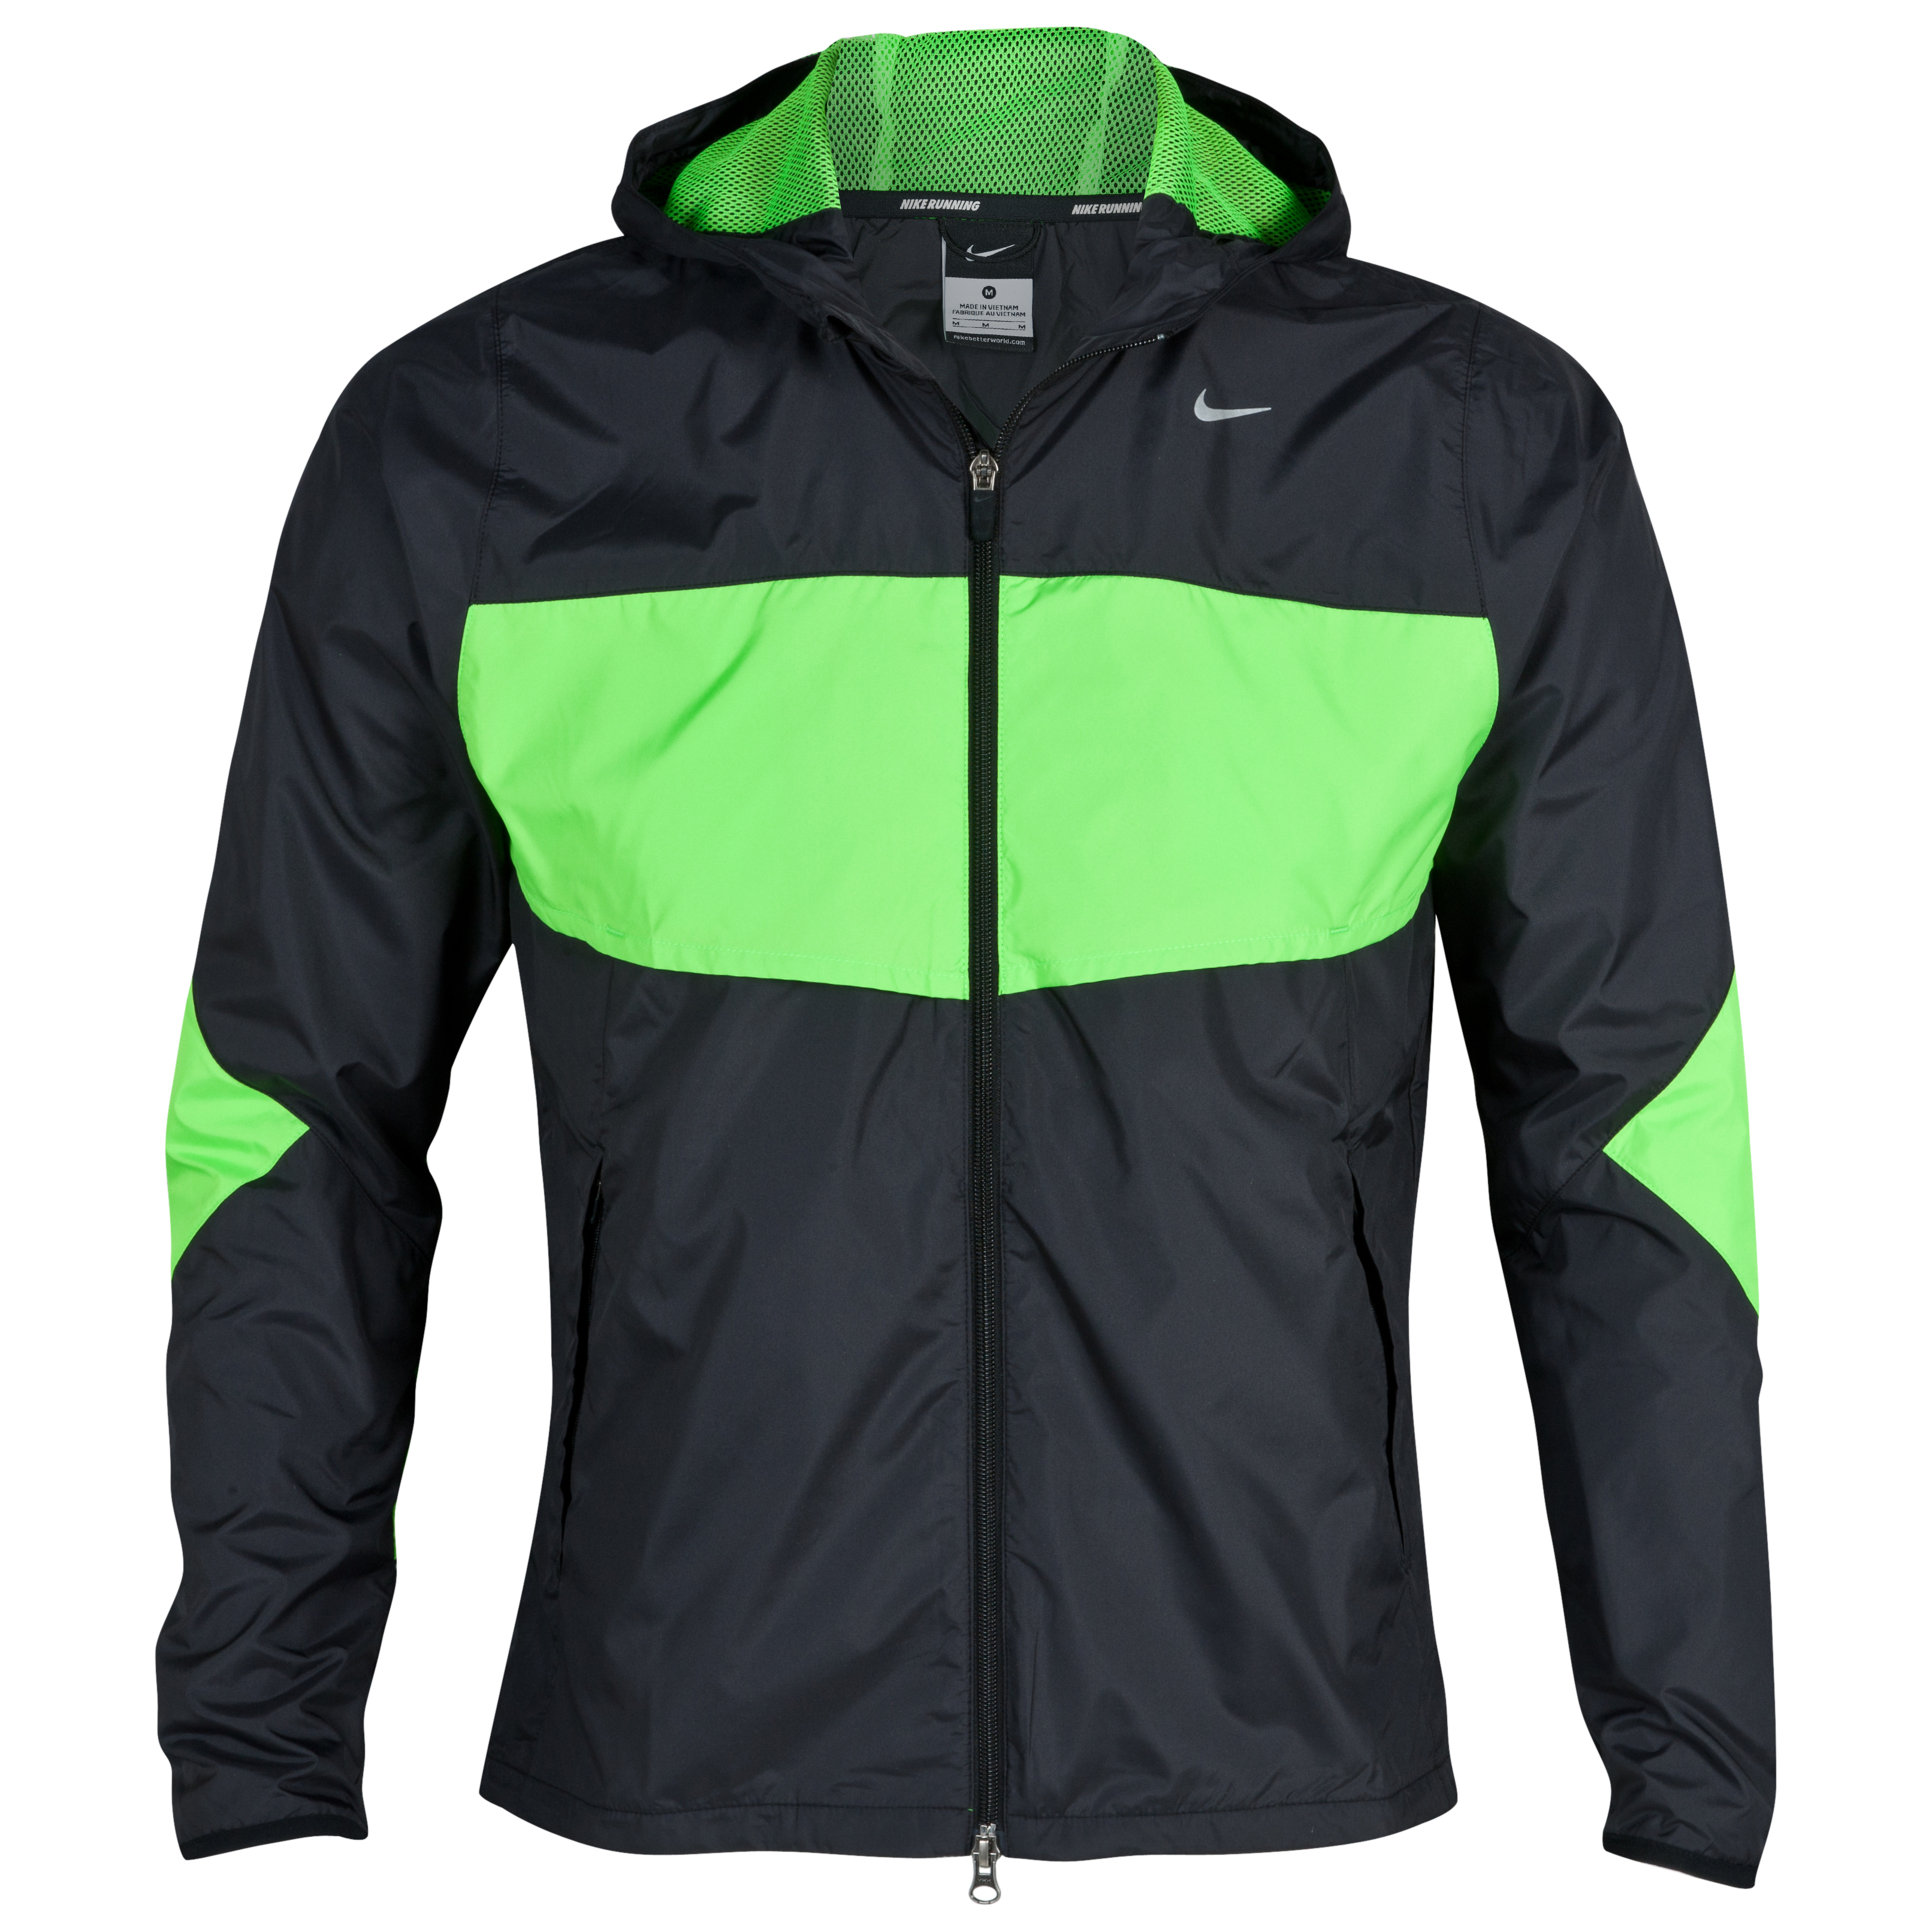 Nike Vapor Lite Jacket - Black/Electric Green/Reflective Silver